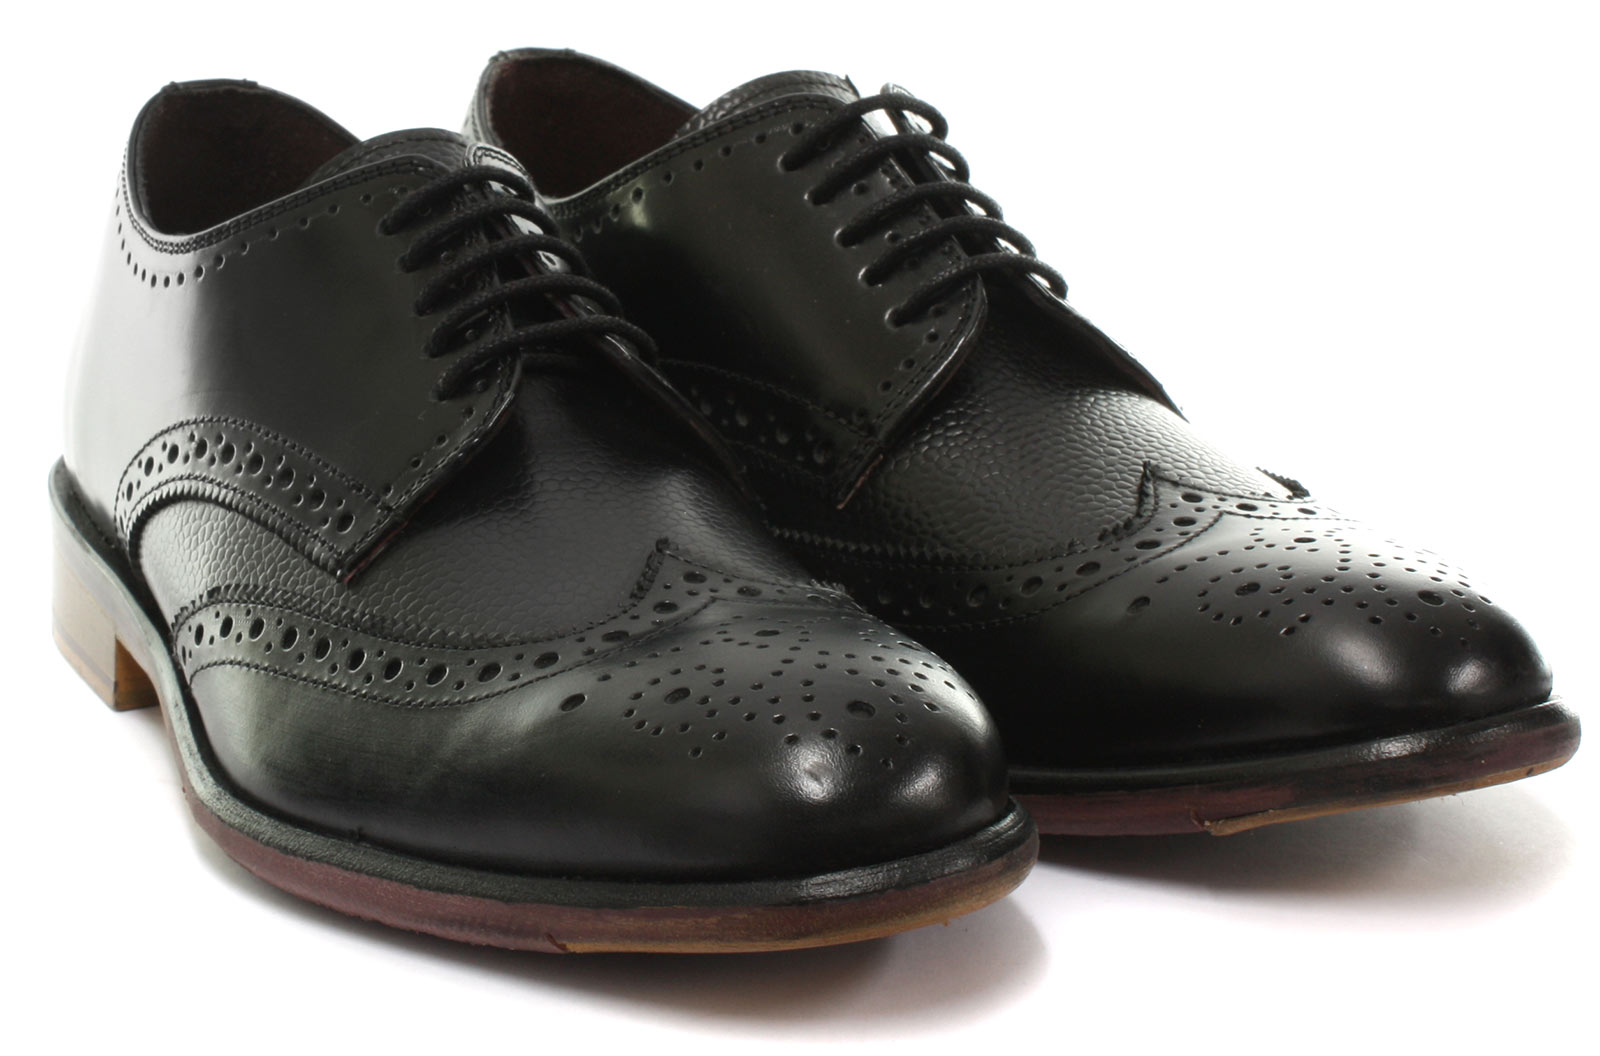 London Brogues Lincoln SIZES Derby Mens Leather Brogue Shoes ALL SIZES Lincoln AND COLOURS 3e9fe7